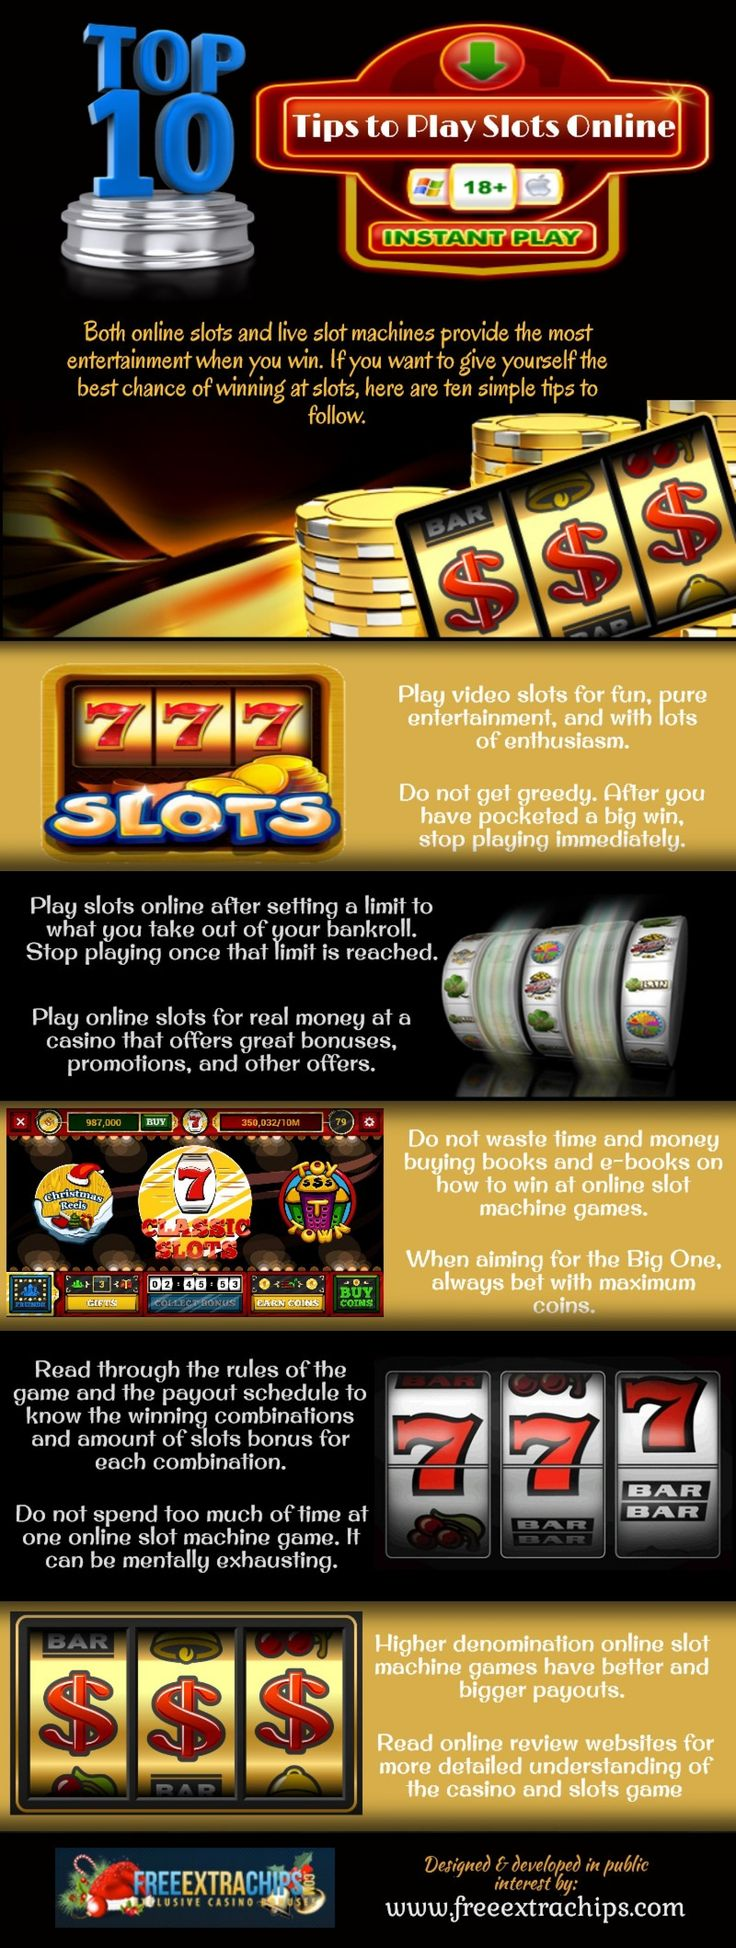 Casino casino game guide information online online tip casino royal monte carlo